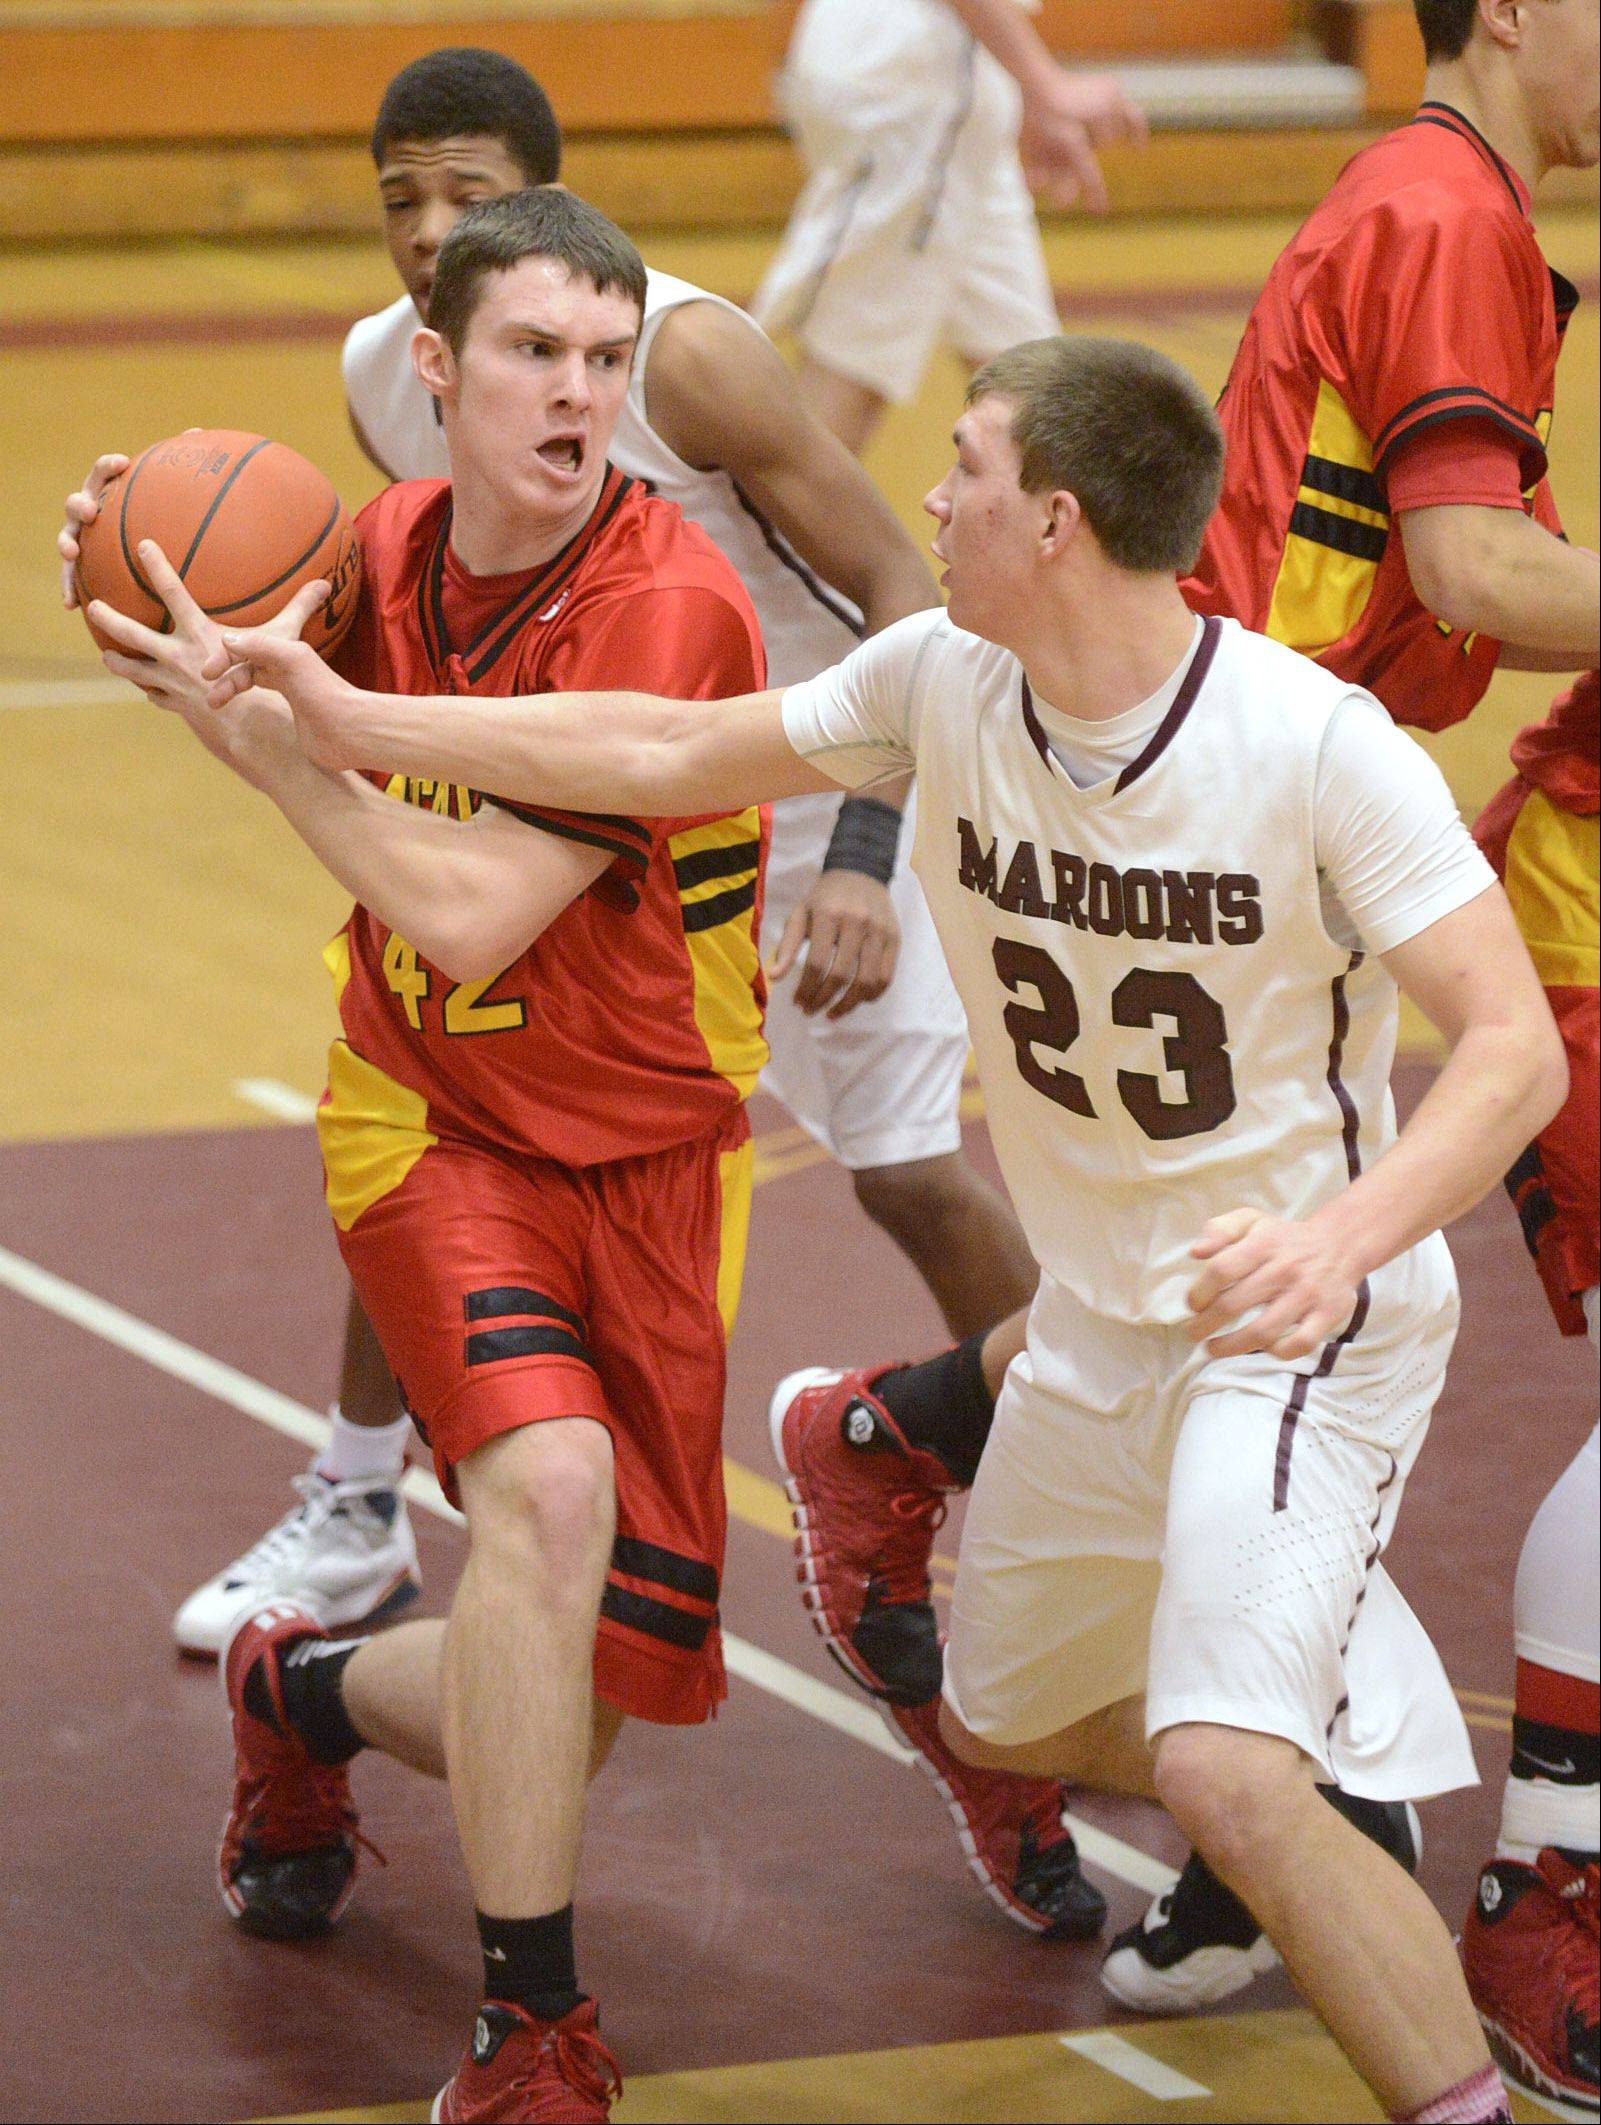 Batavia's Ryan Olson hangs on tight to a rebound near Elgin's Ryan Sitter in the second quarter on Saturday, January 18.